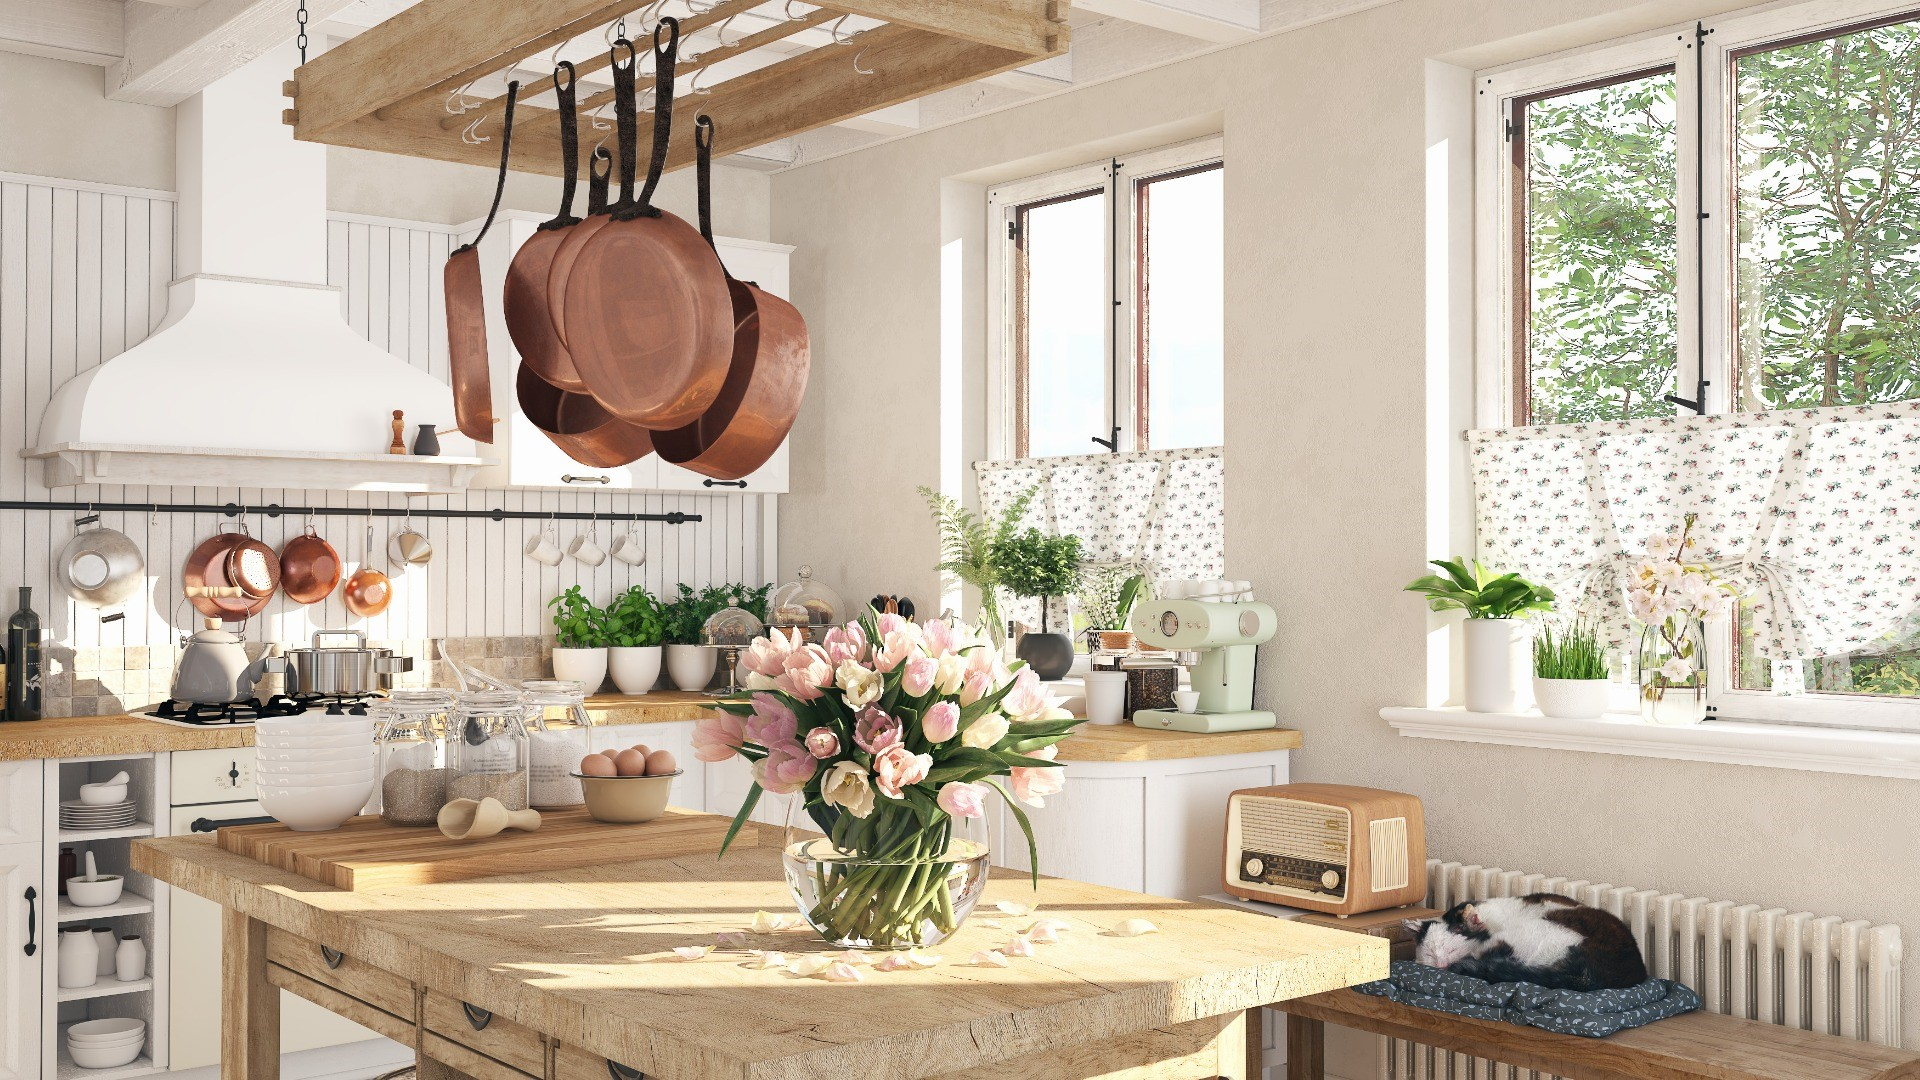 Bright and airy French cottage style kitchen with large wooden island styled with floral arrangements, creamware, linen tablecloths, simple white cabinets and a copper pot rack.